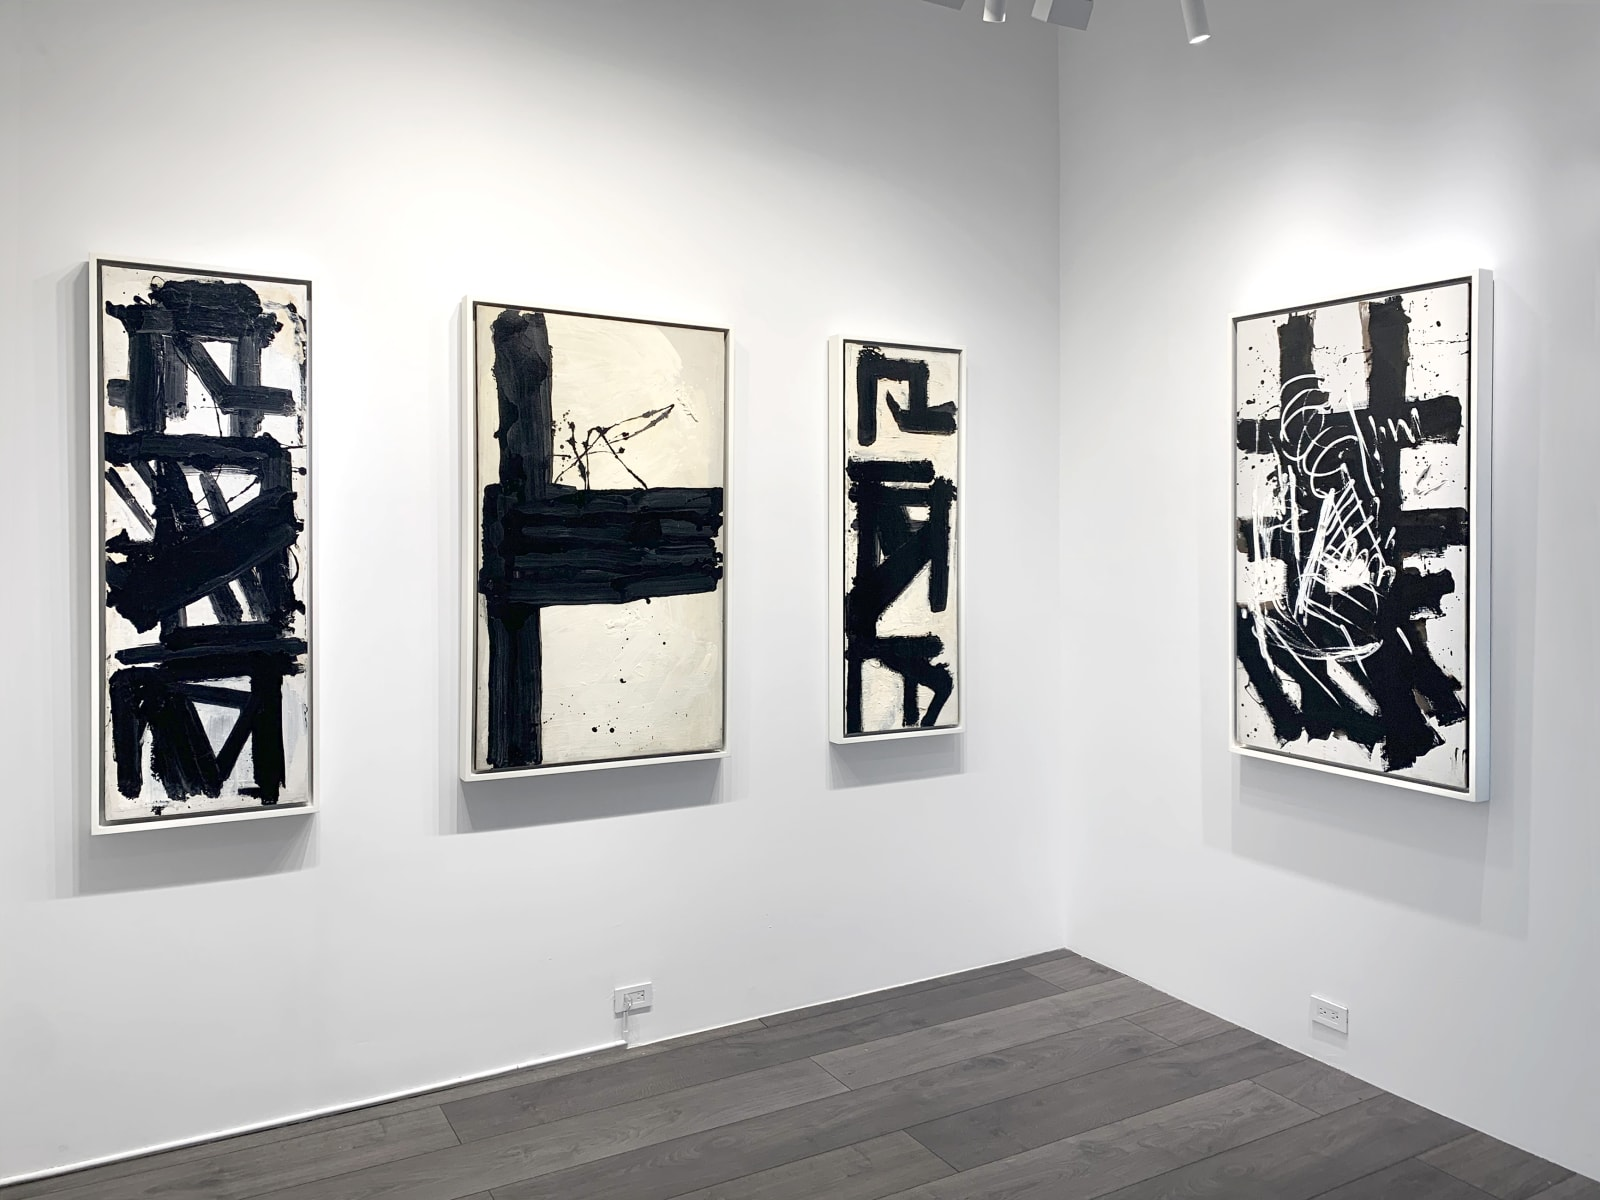 Installation view: Epilogue: Michael West's Monochrome Climax